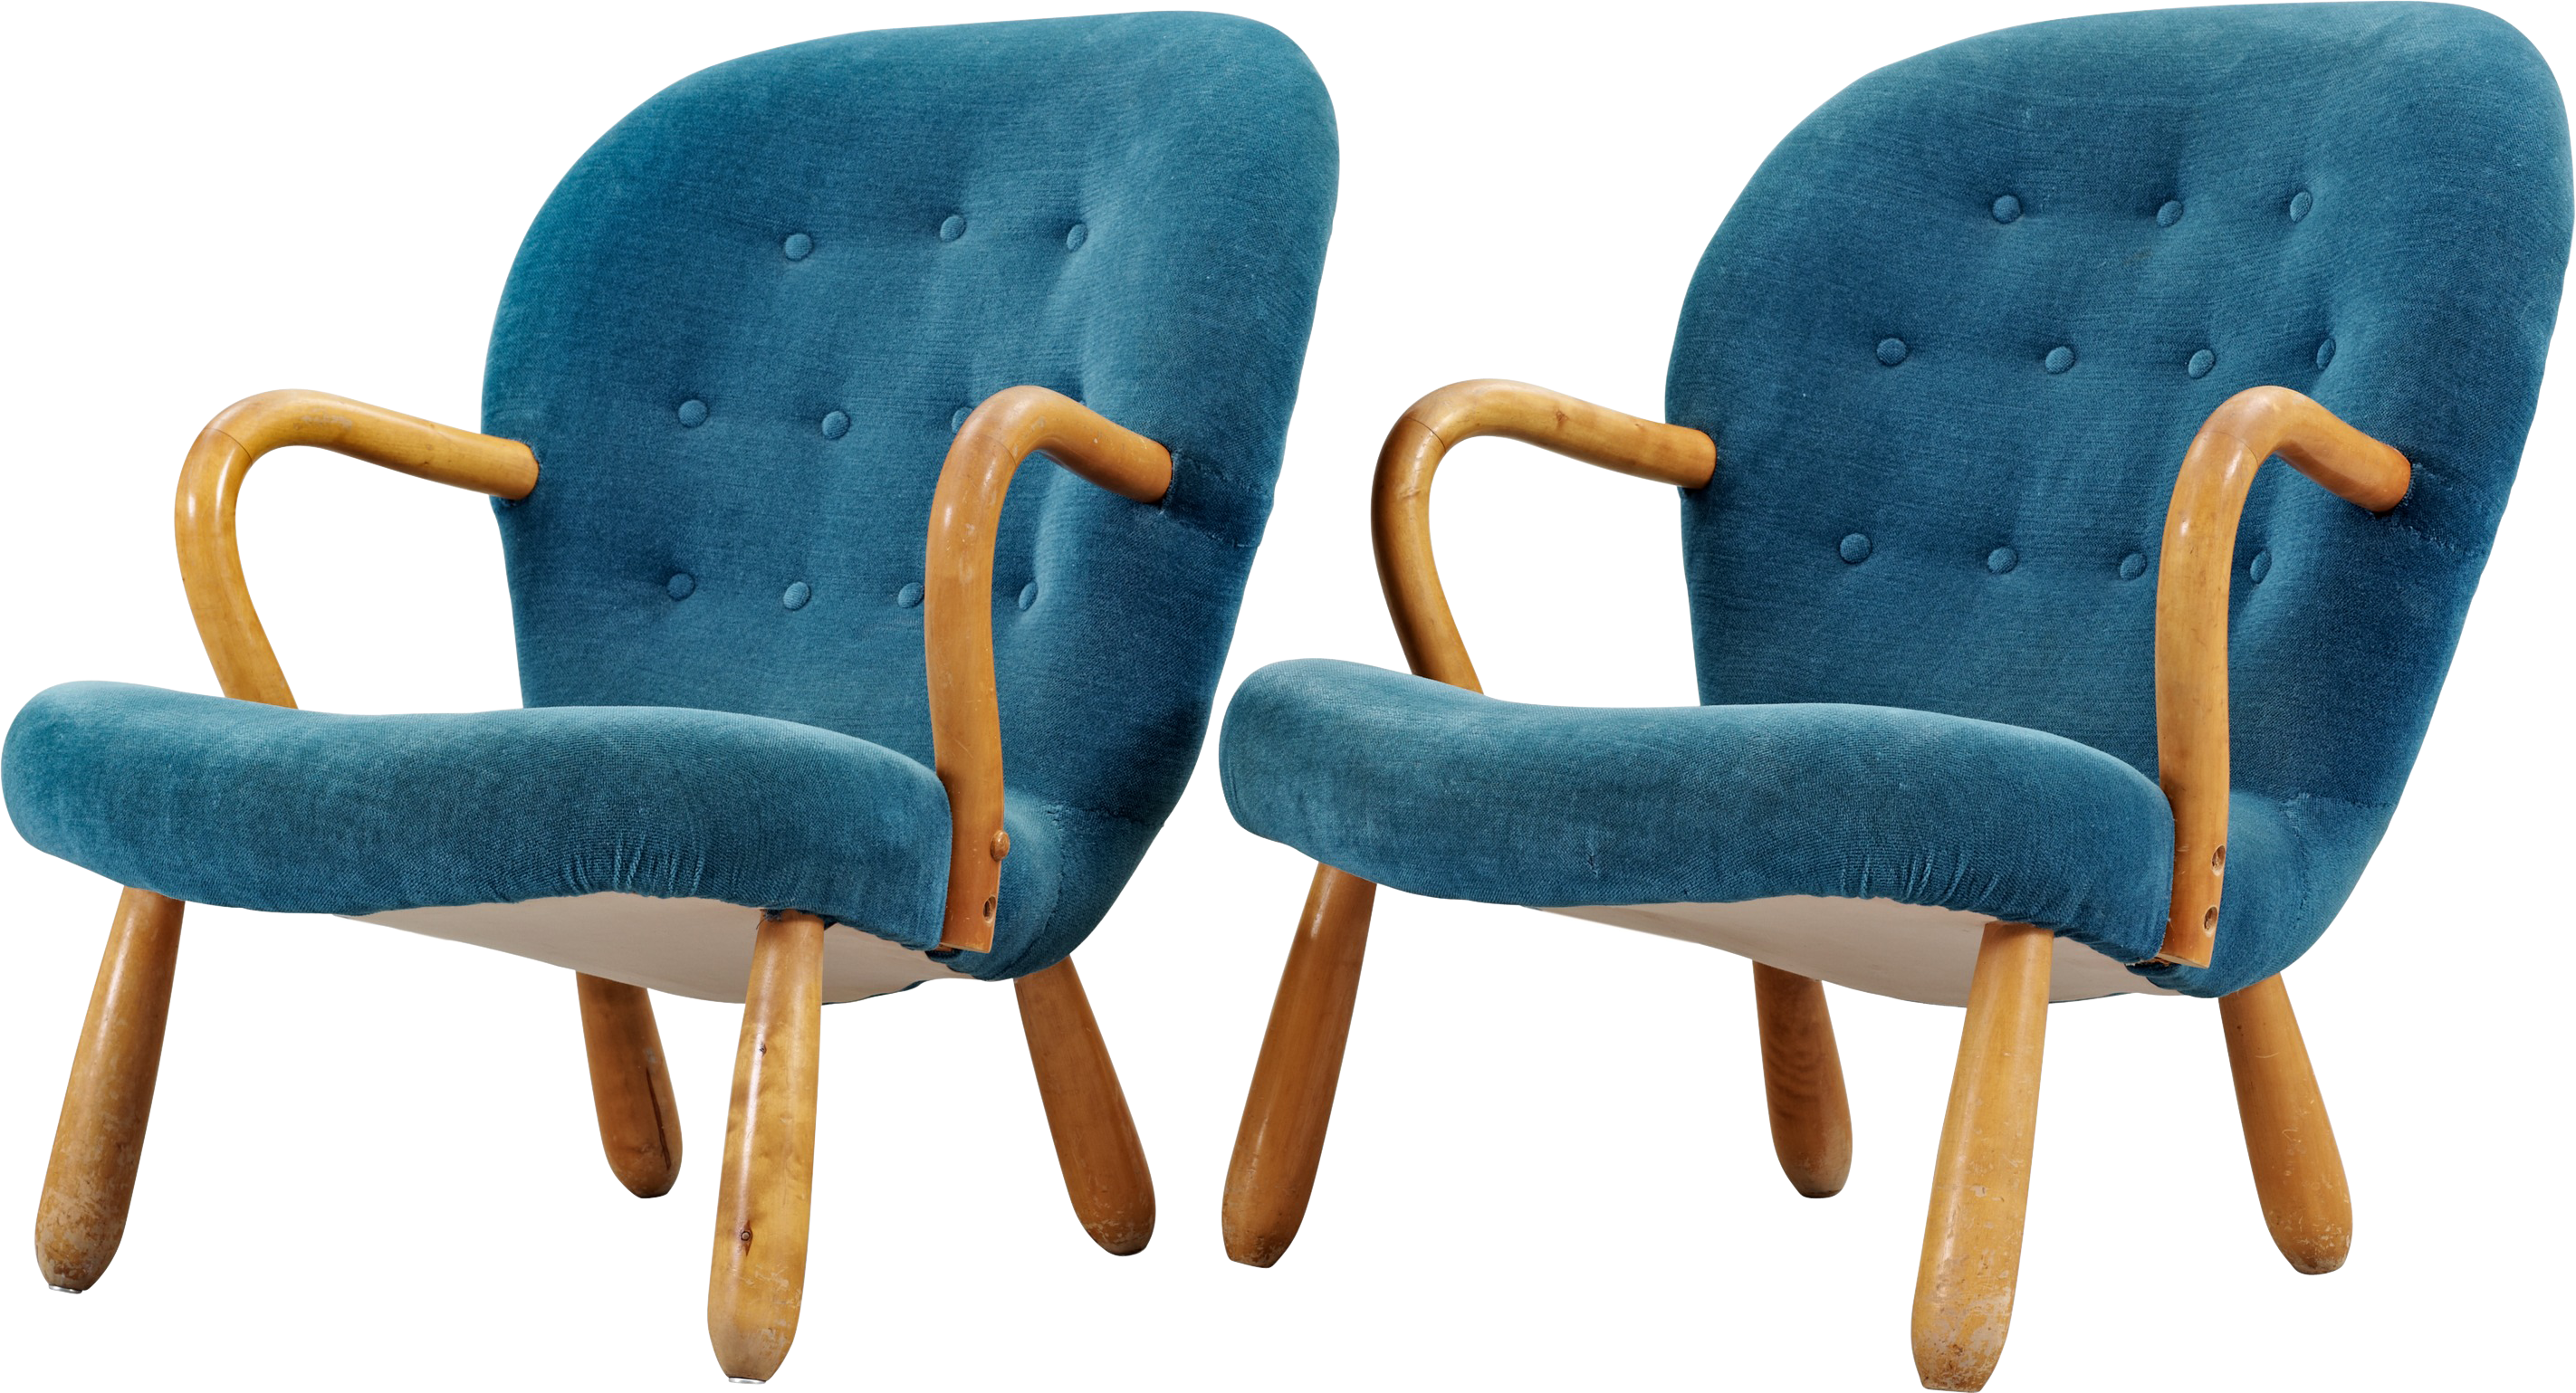 Armchair png images free. Furniture clipart easy chair